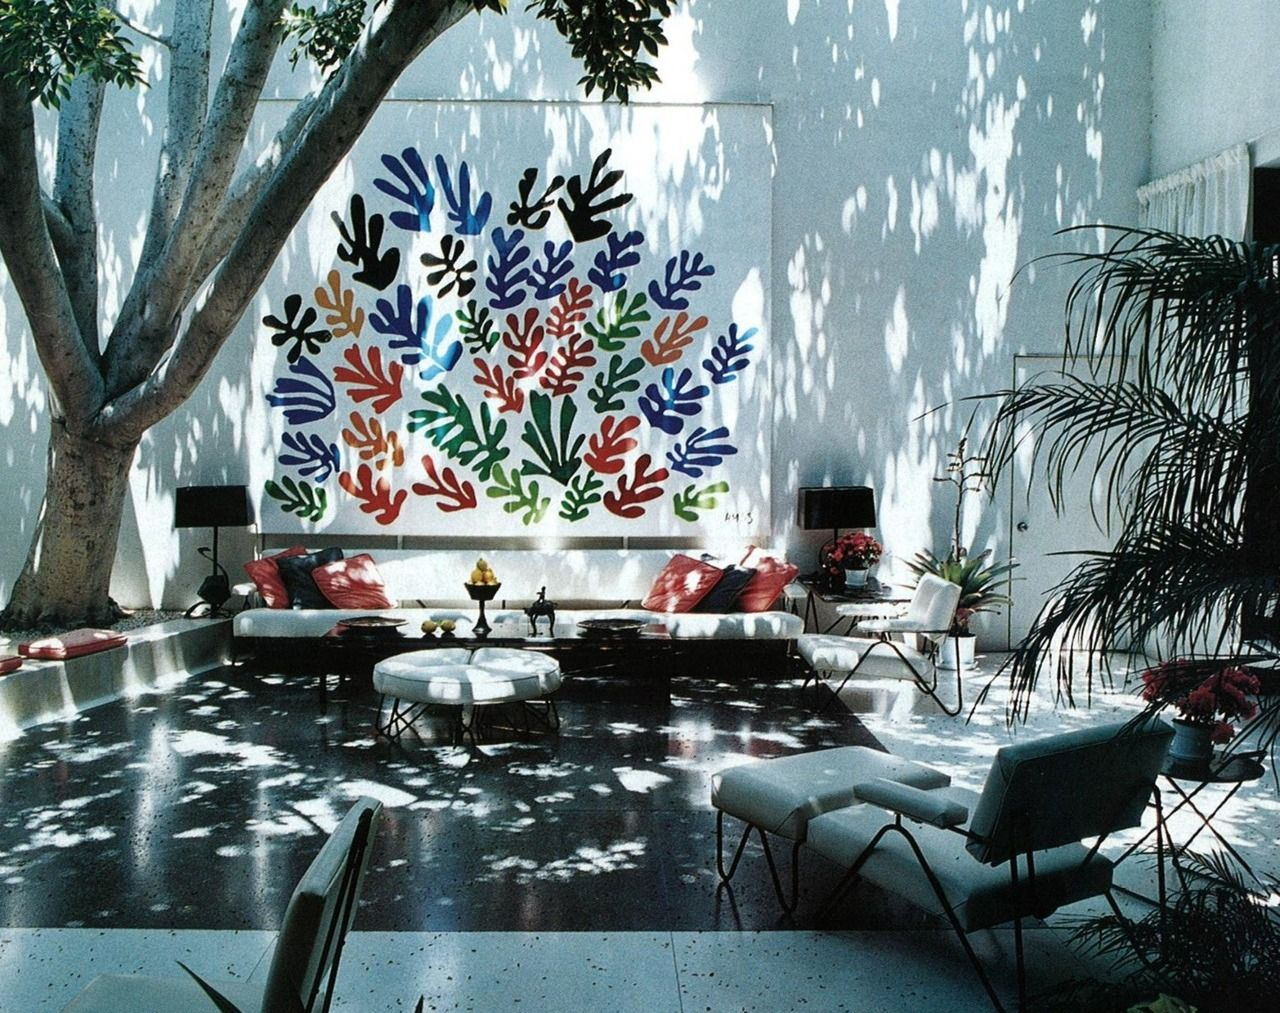 home of art collector Frances Lasker Brody (who died at 93 in 2009) - with Henri Matisse's 1953 ceramic art called 'The Sheaf'.